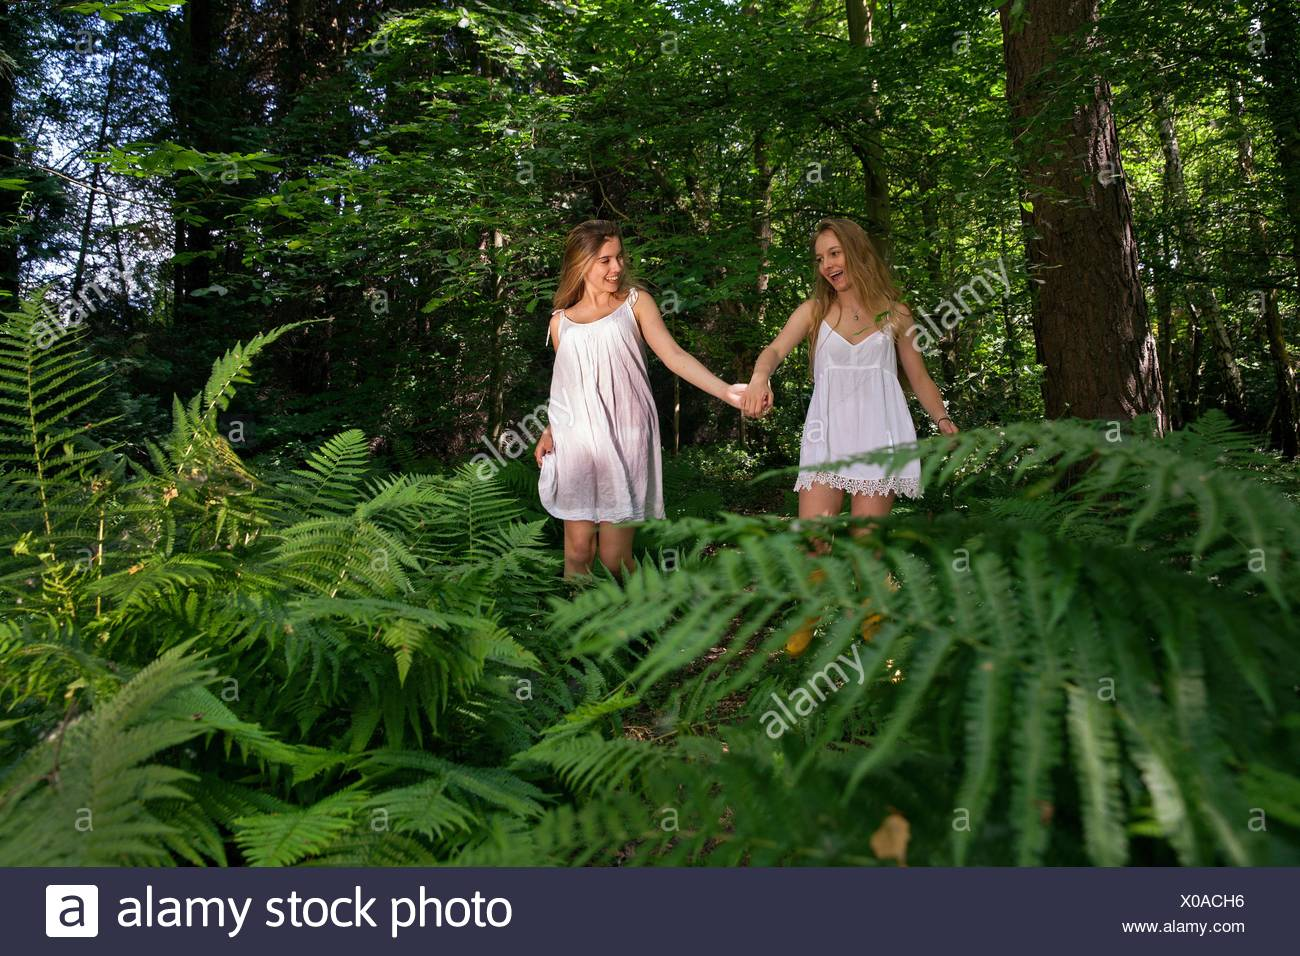 Two teenage girls walking through forest, hand in hand - Stock Image